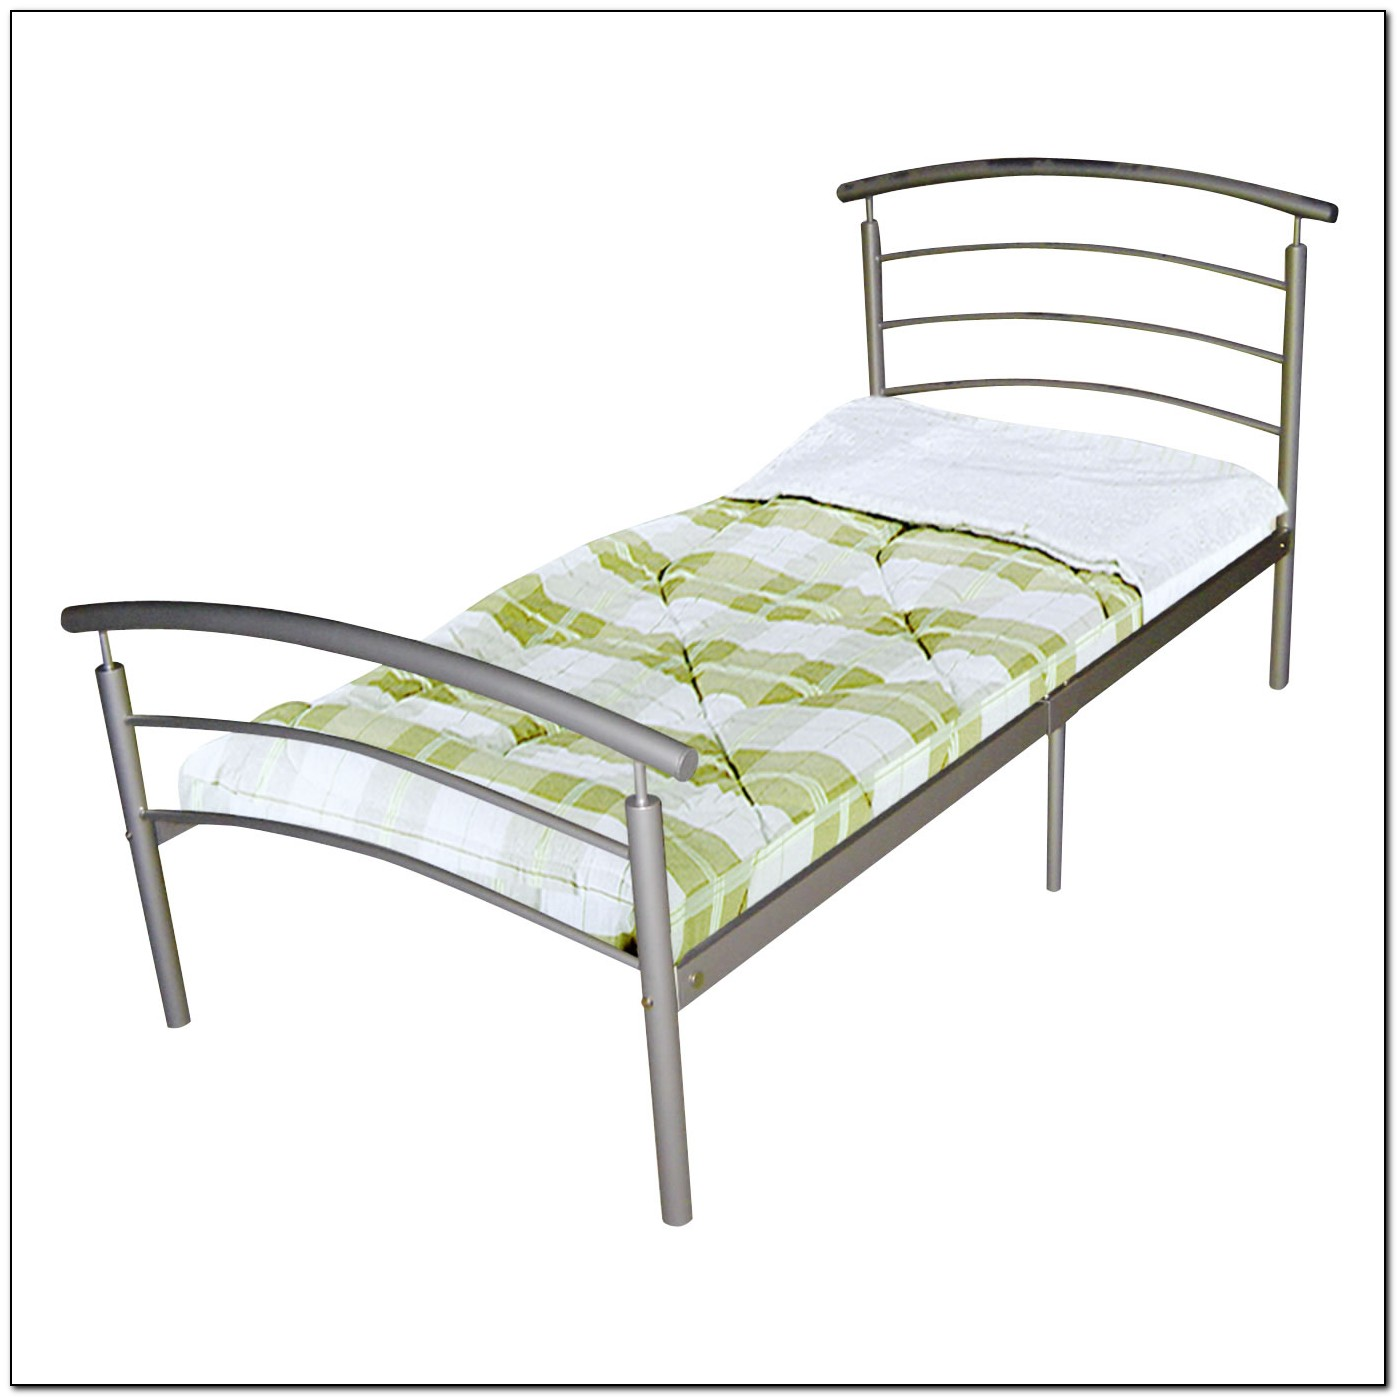 Steel Bed Frame Parts